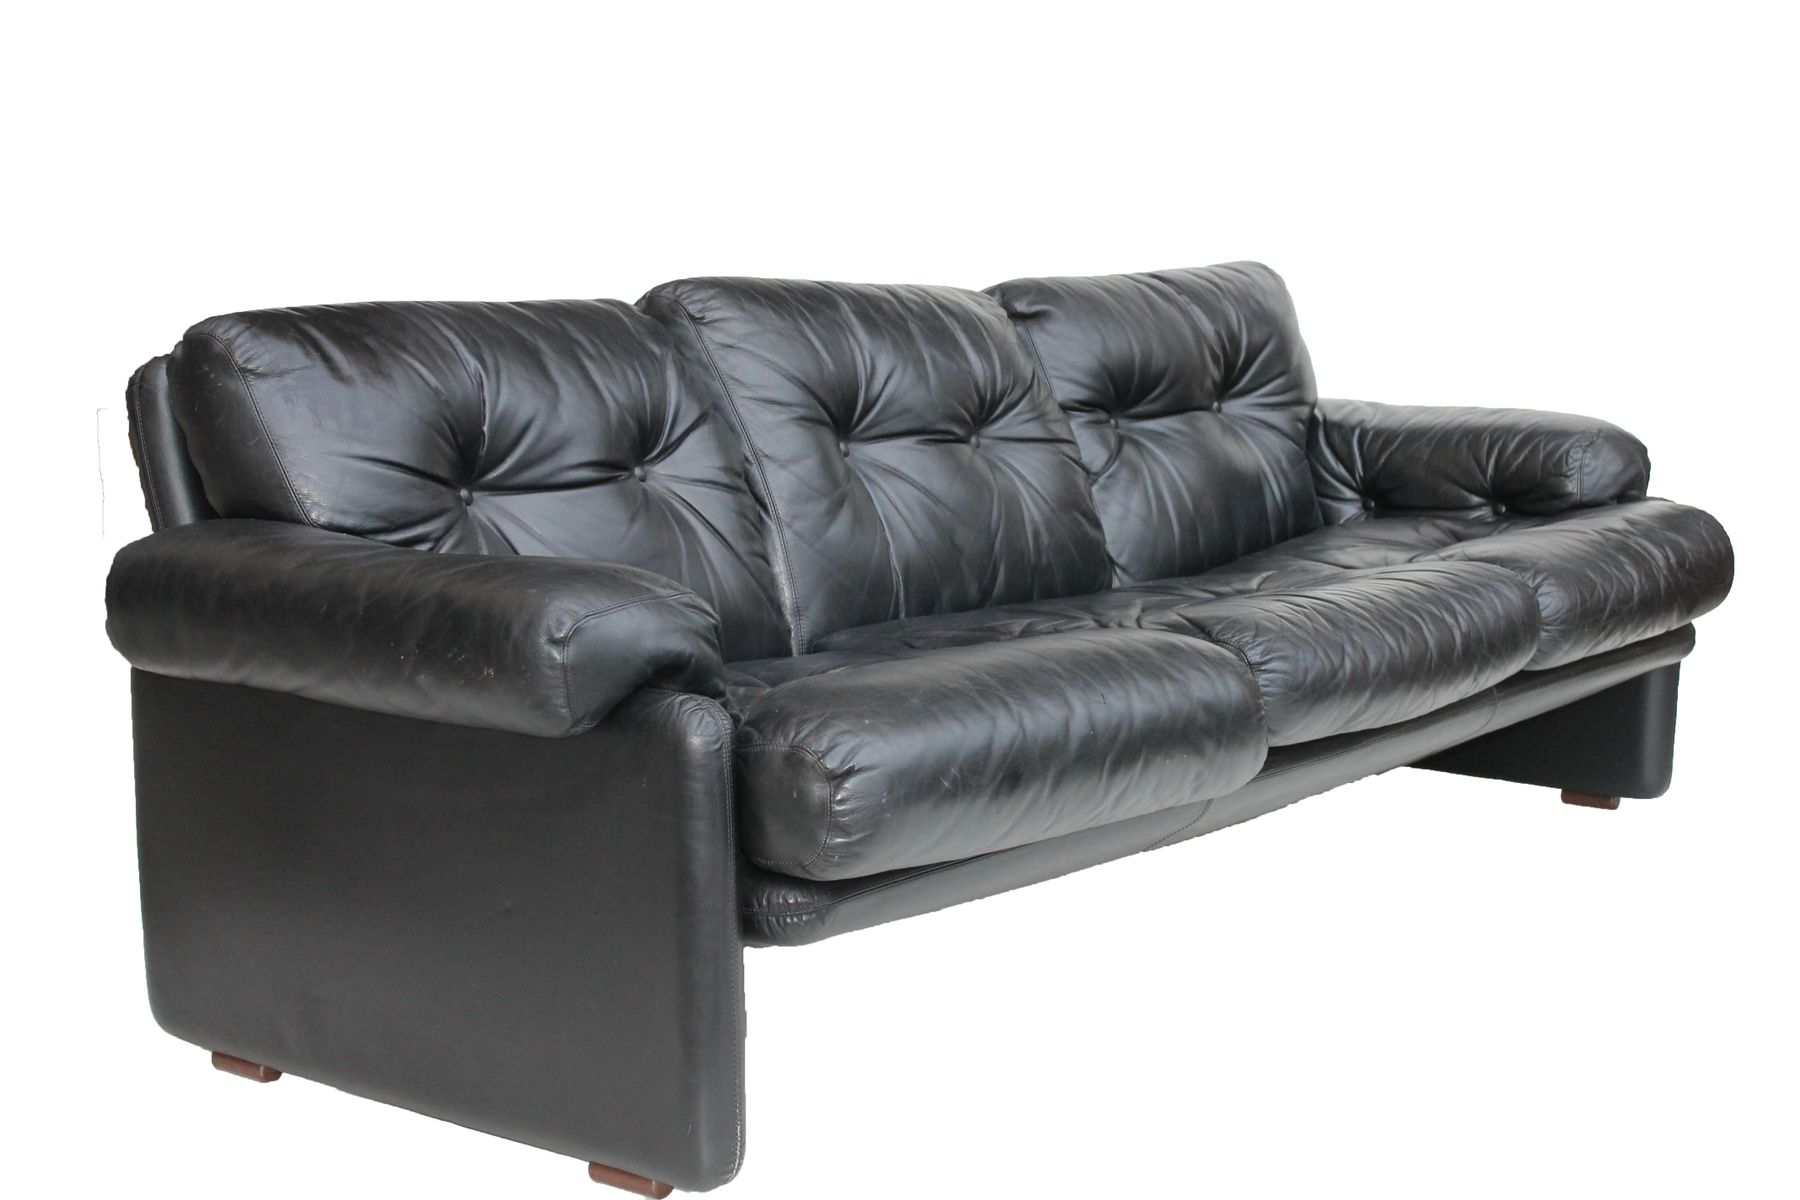 coronado ledersofa von tobia scarpa f r b b italia 1970er bei pamono kaufen. Black Bedroom Furniture Sets. Home Design Ideas